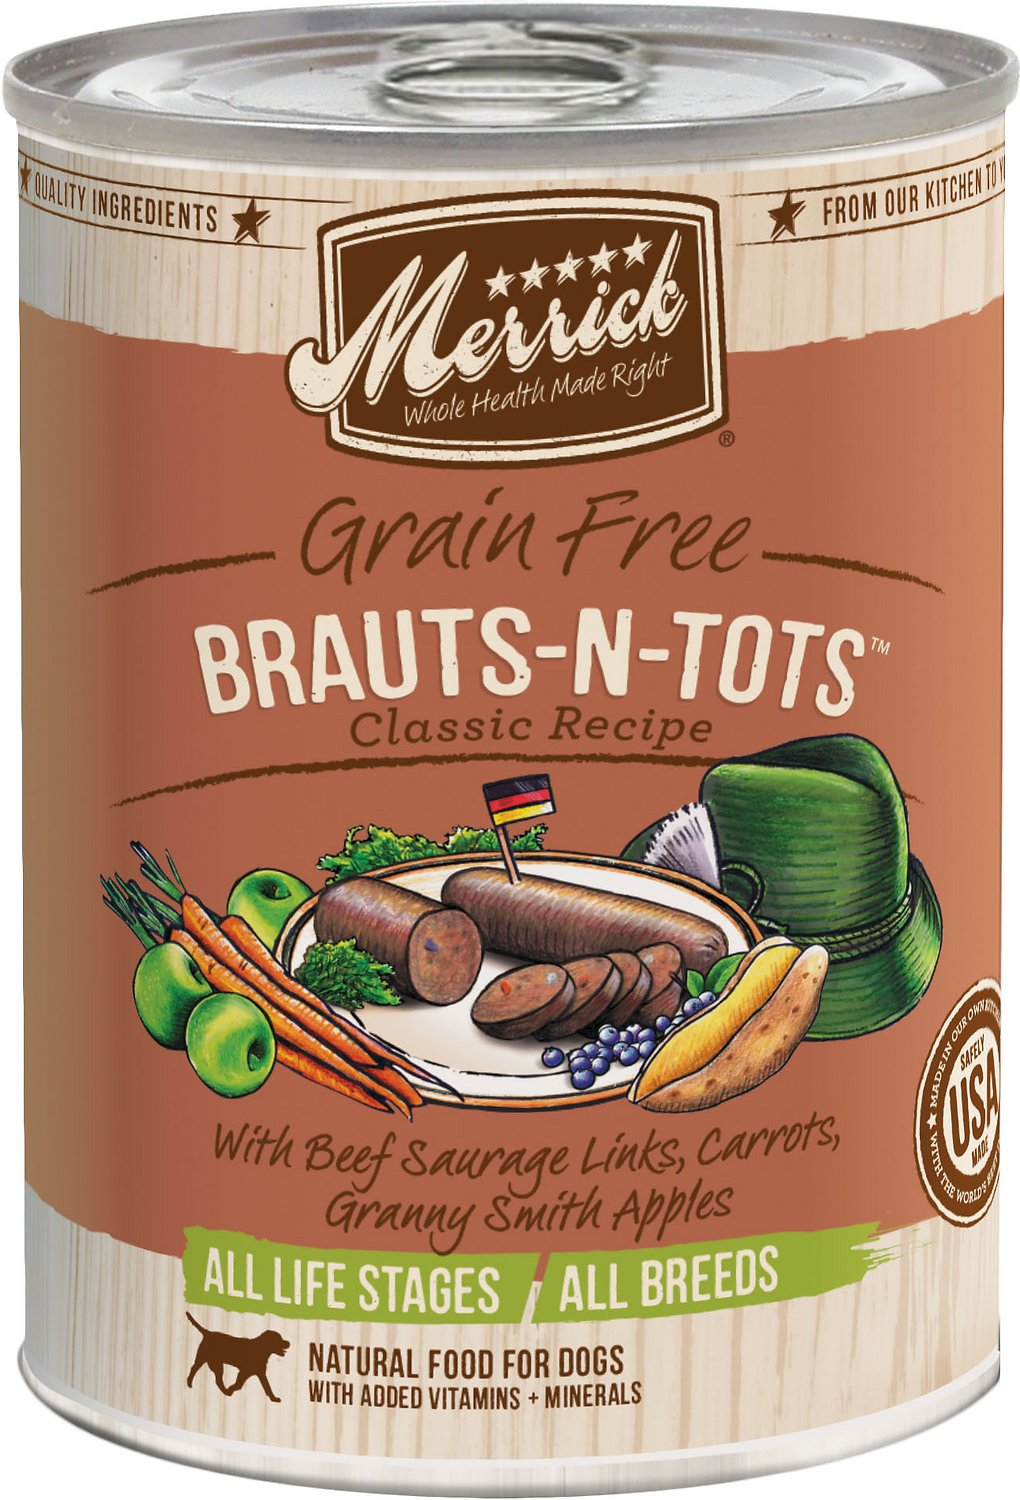 Merrick Grain-Free Brauts-n-Tots Canned Dog Food, 12.7-oz